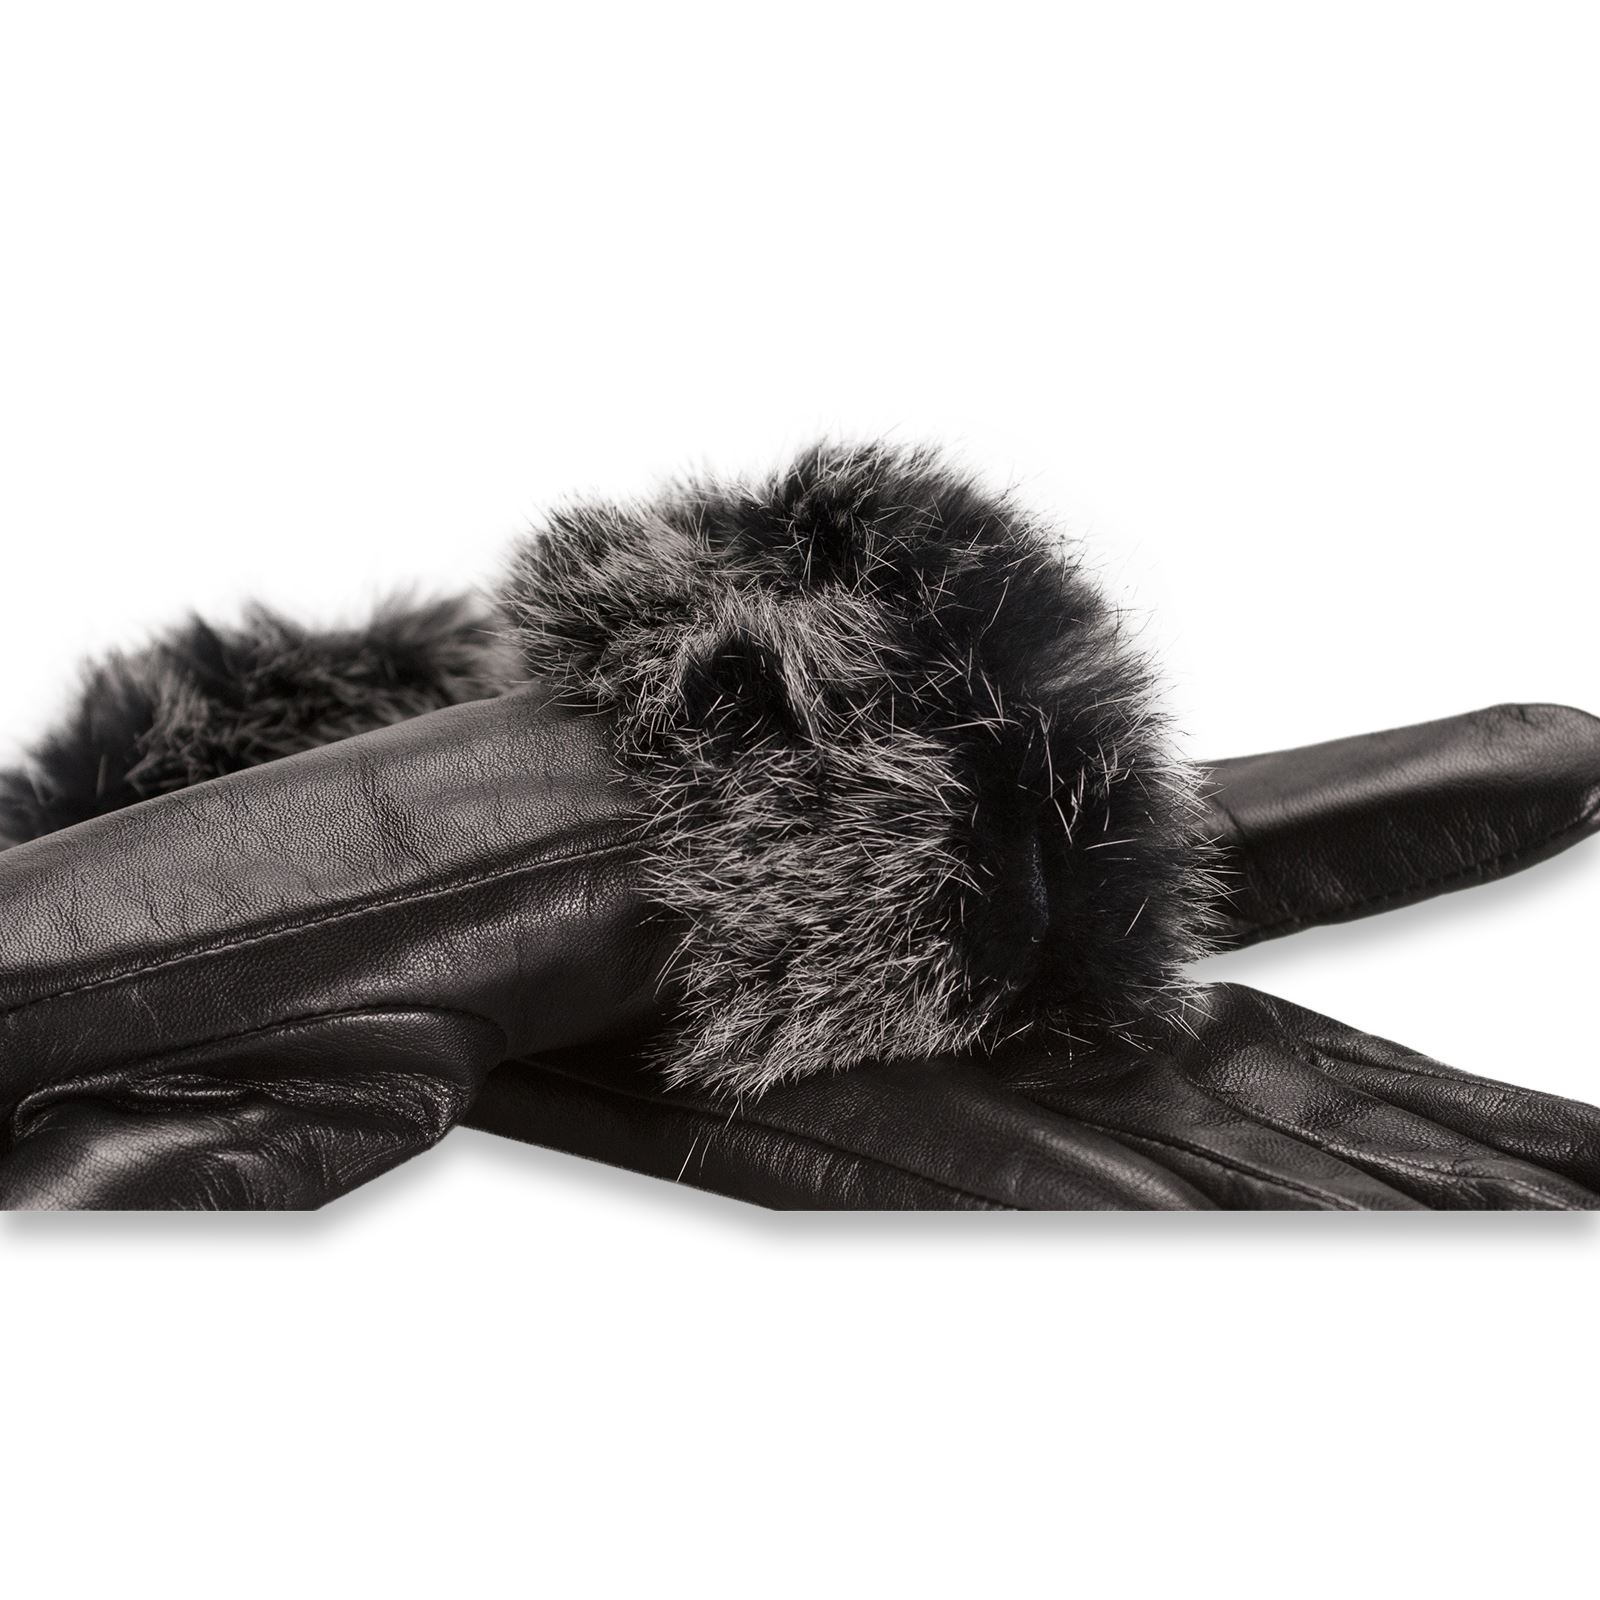 Ladies leather gloves wool lined - Quivano Black Label Premium Womens Leather Gloves Wool